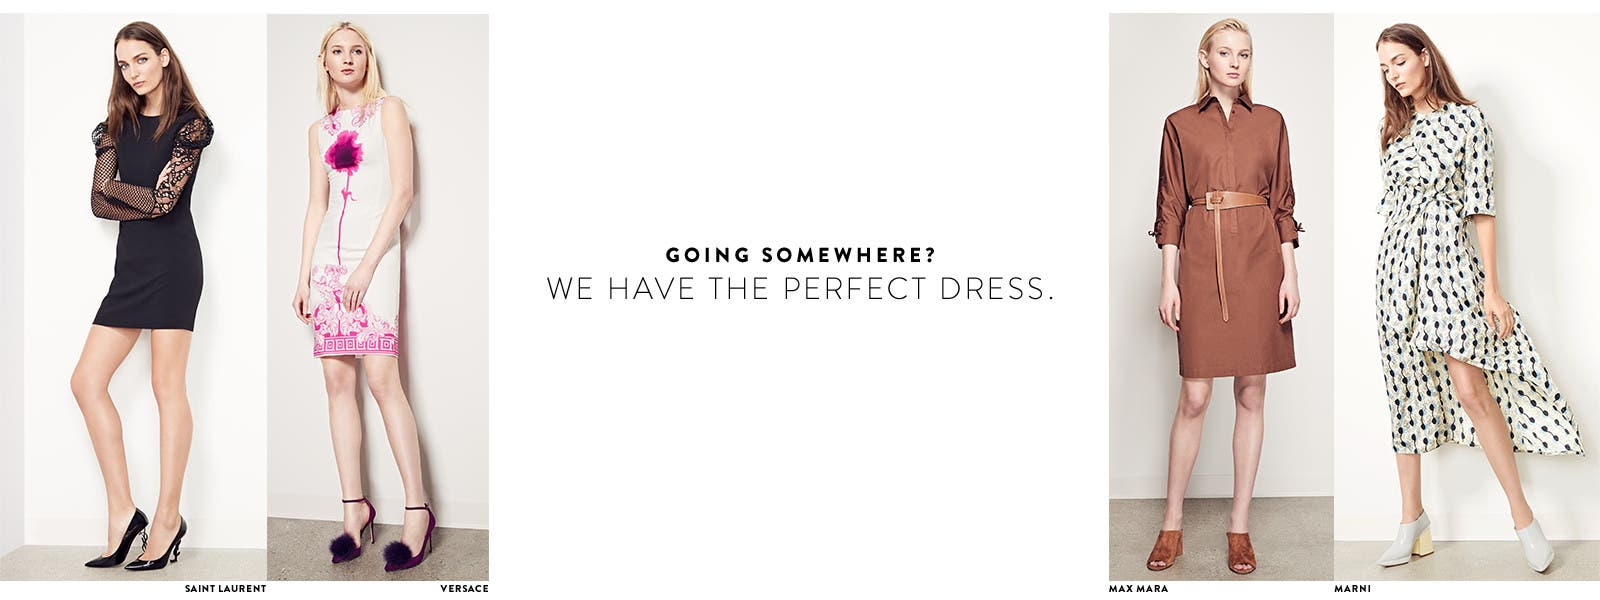 Going somewhere? We have the perfect designer dress.